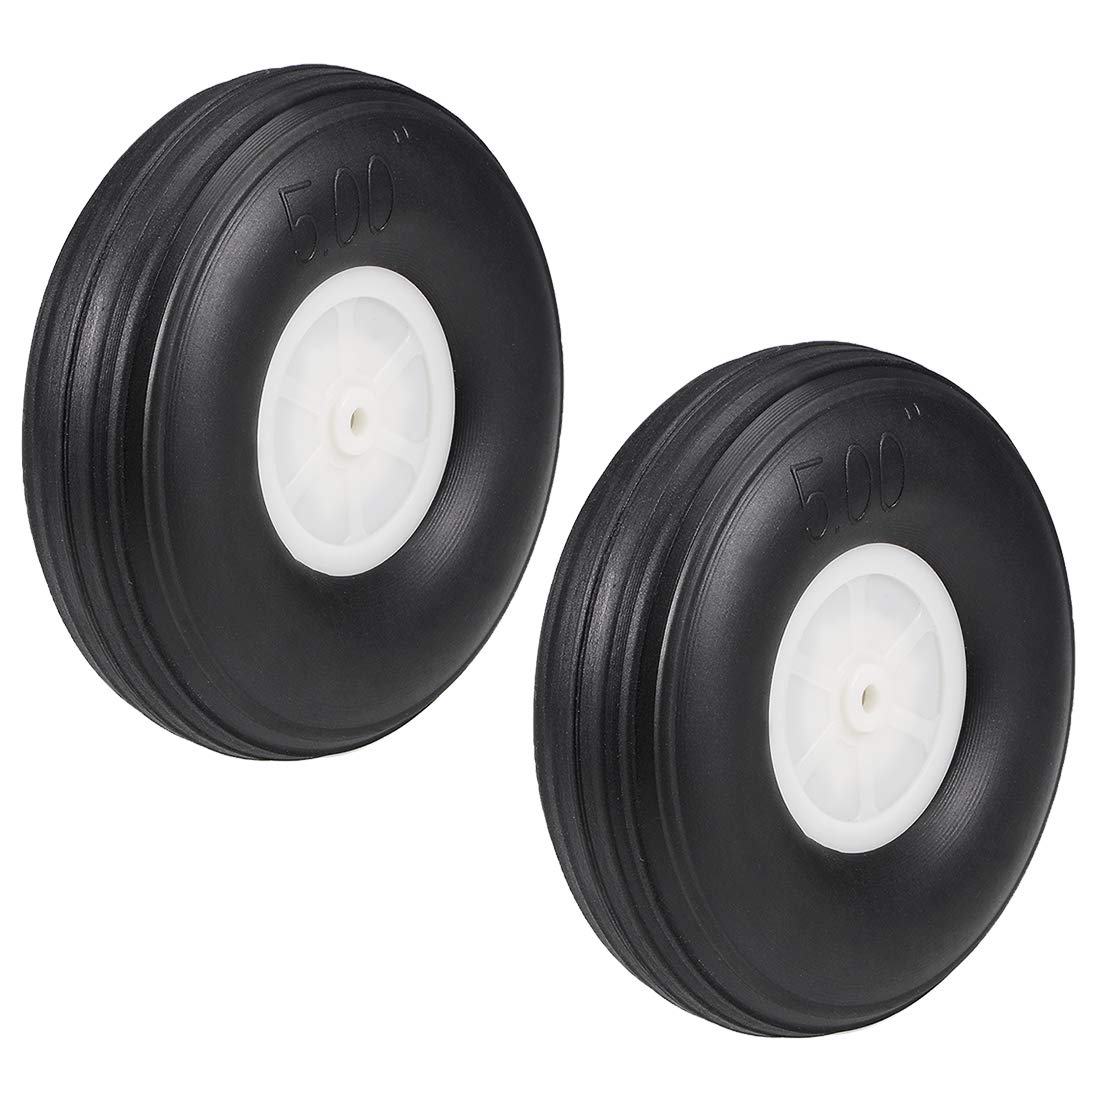 uxcell Tire and Wheel Sets for RC Car Airplane,PU Sponge Tire with Plastic Hub,5 2pcs